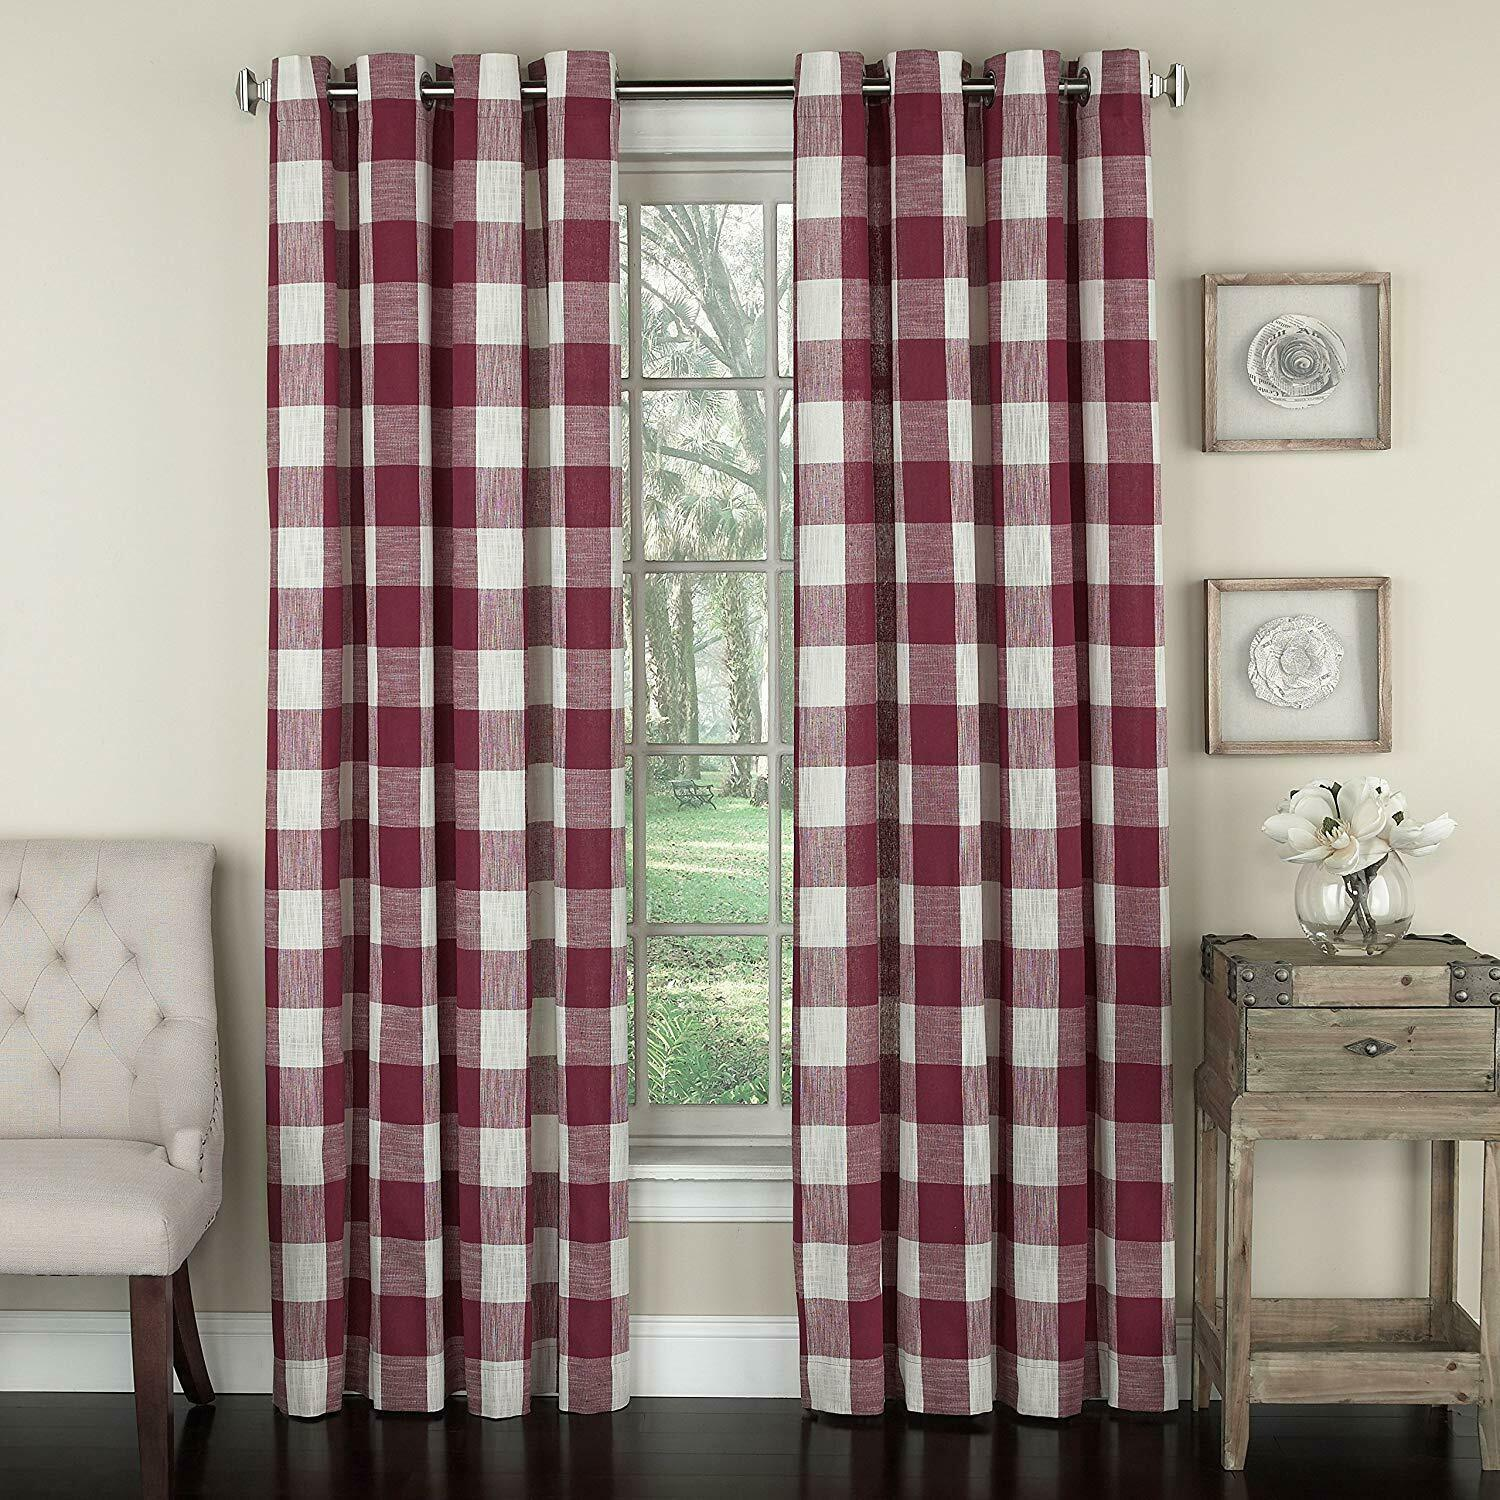 "Primary image for Courtyard Plaid Woven Curtain Panel with Grommets, Red, 84"" length, Lorraine"